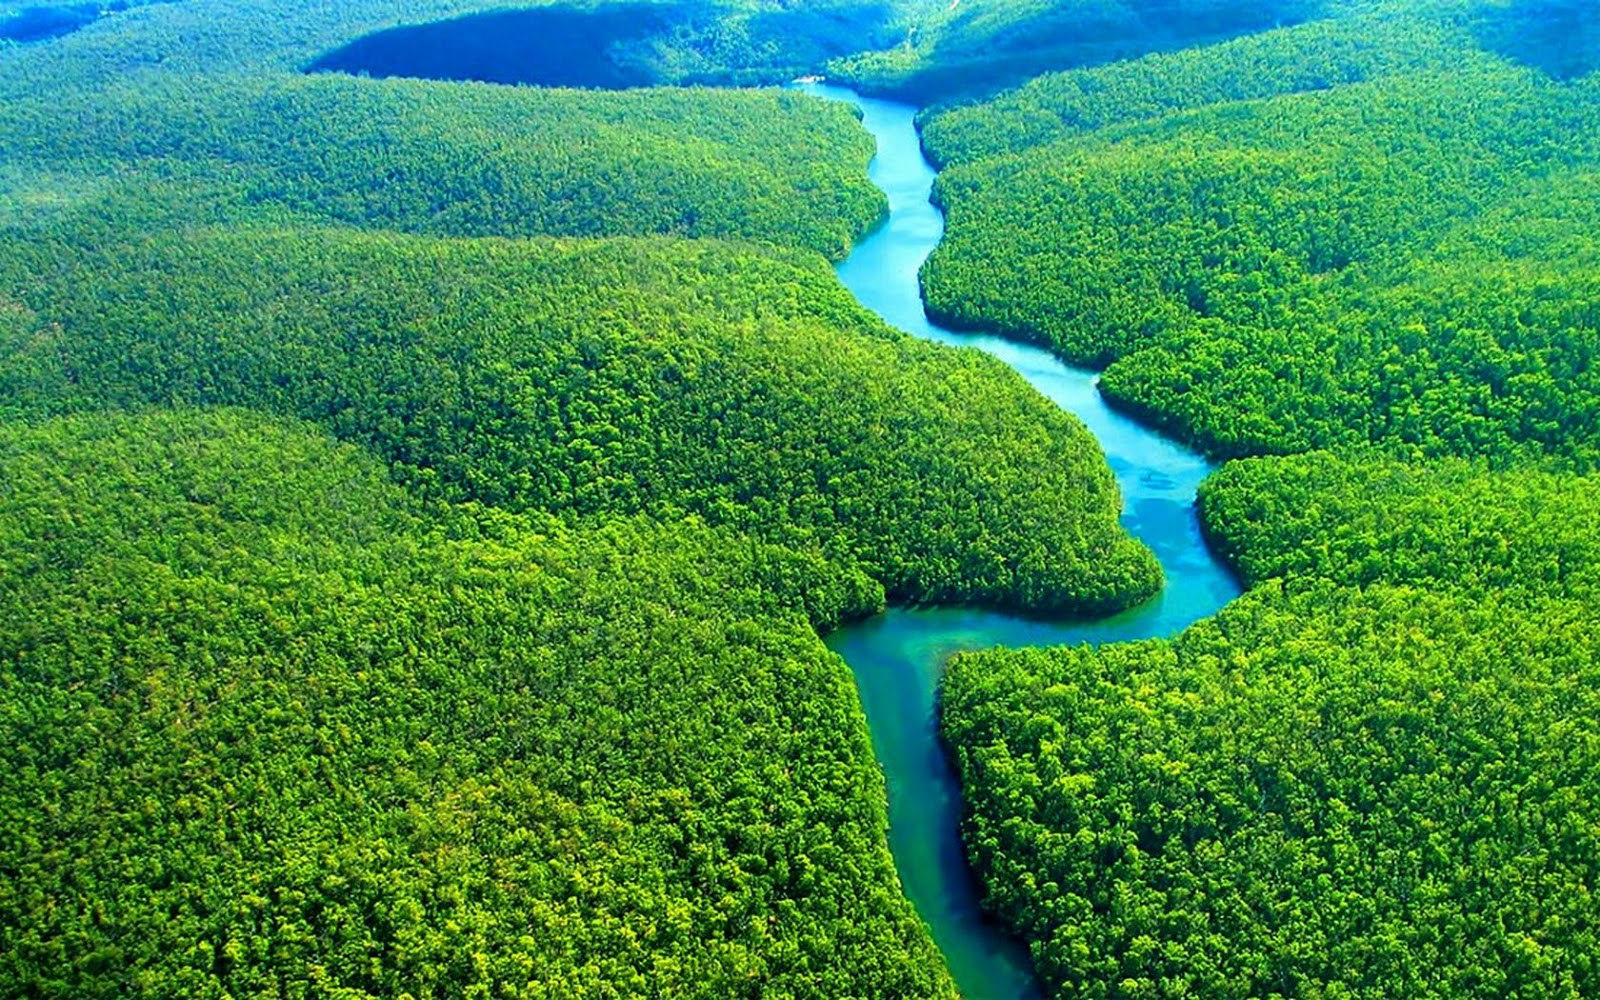 Amazon rainforest hd wallpaper eon wallpapers - Amazon wallpaper hd ...